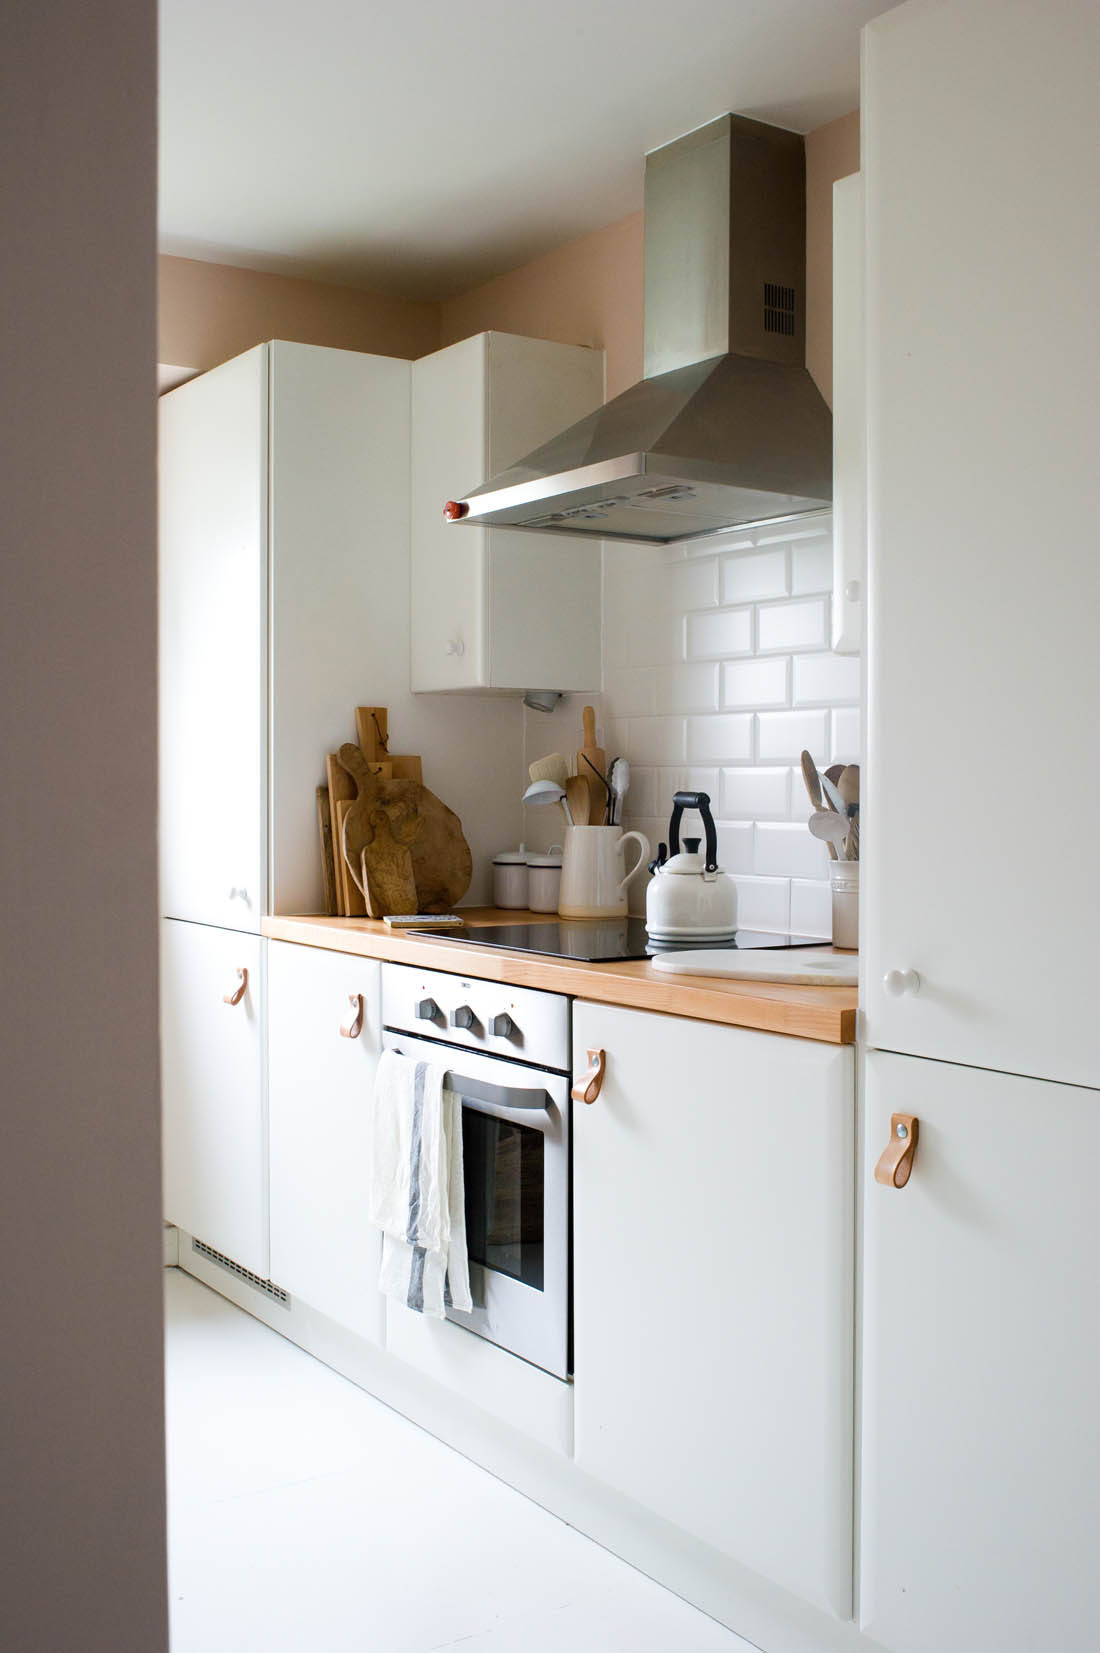 Kitchen makeover |Photograph by katharinepeachey.co.uk | Apartment Apothecary